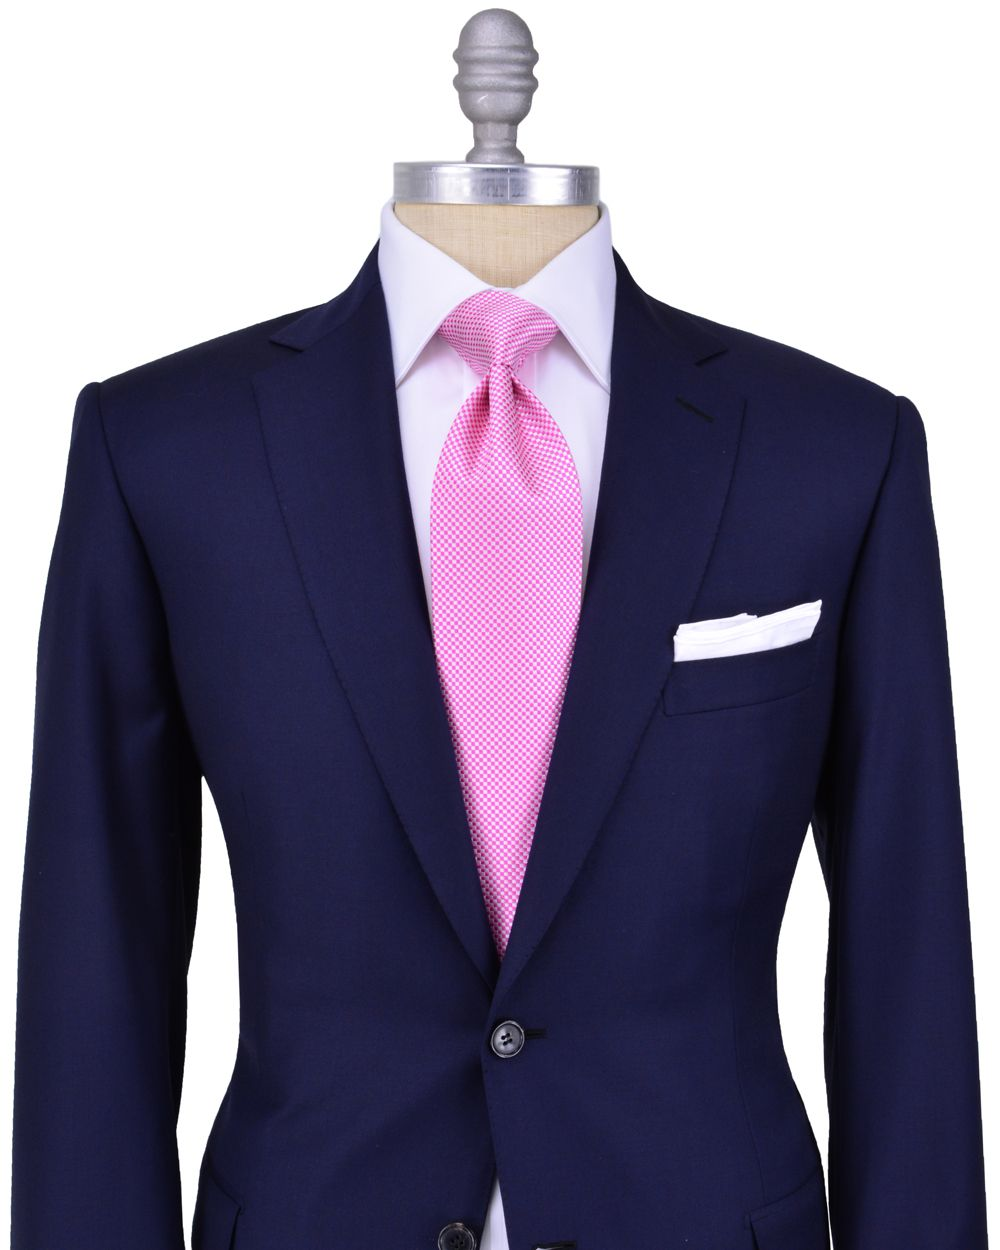 Navy suit and mesmerizing pink tie stanley korshak Blue suit shirt tie combinations